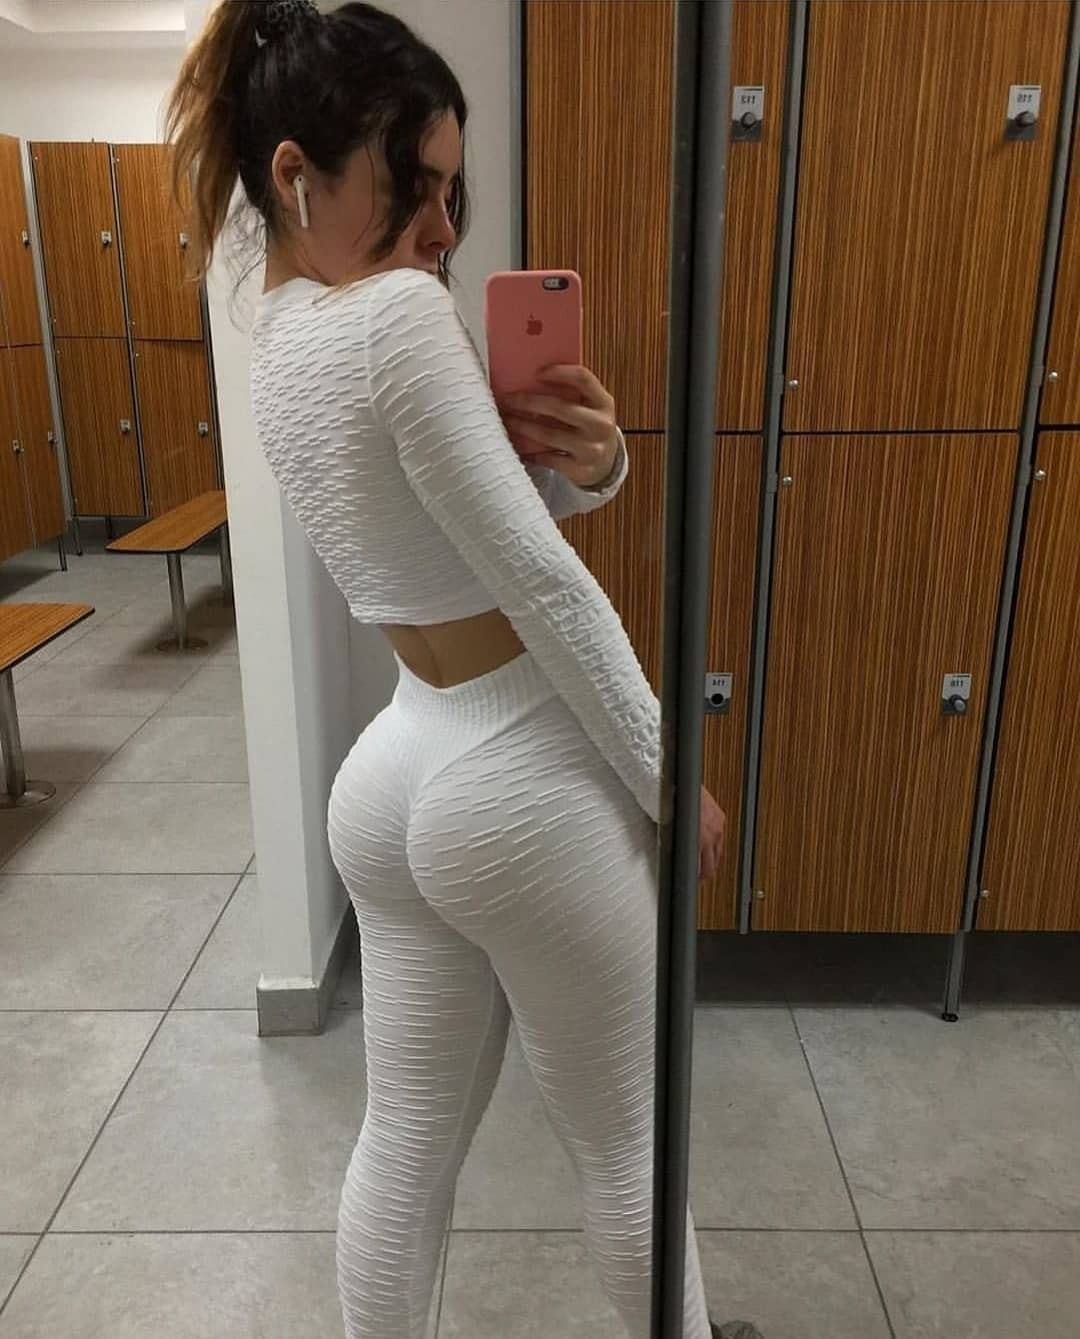 Cute Hot Girls On The Instagram, Physical fitness